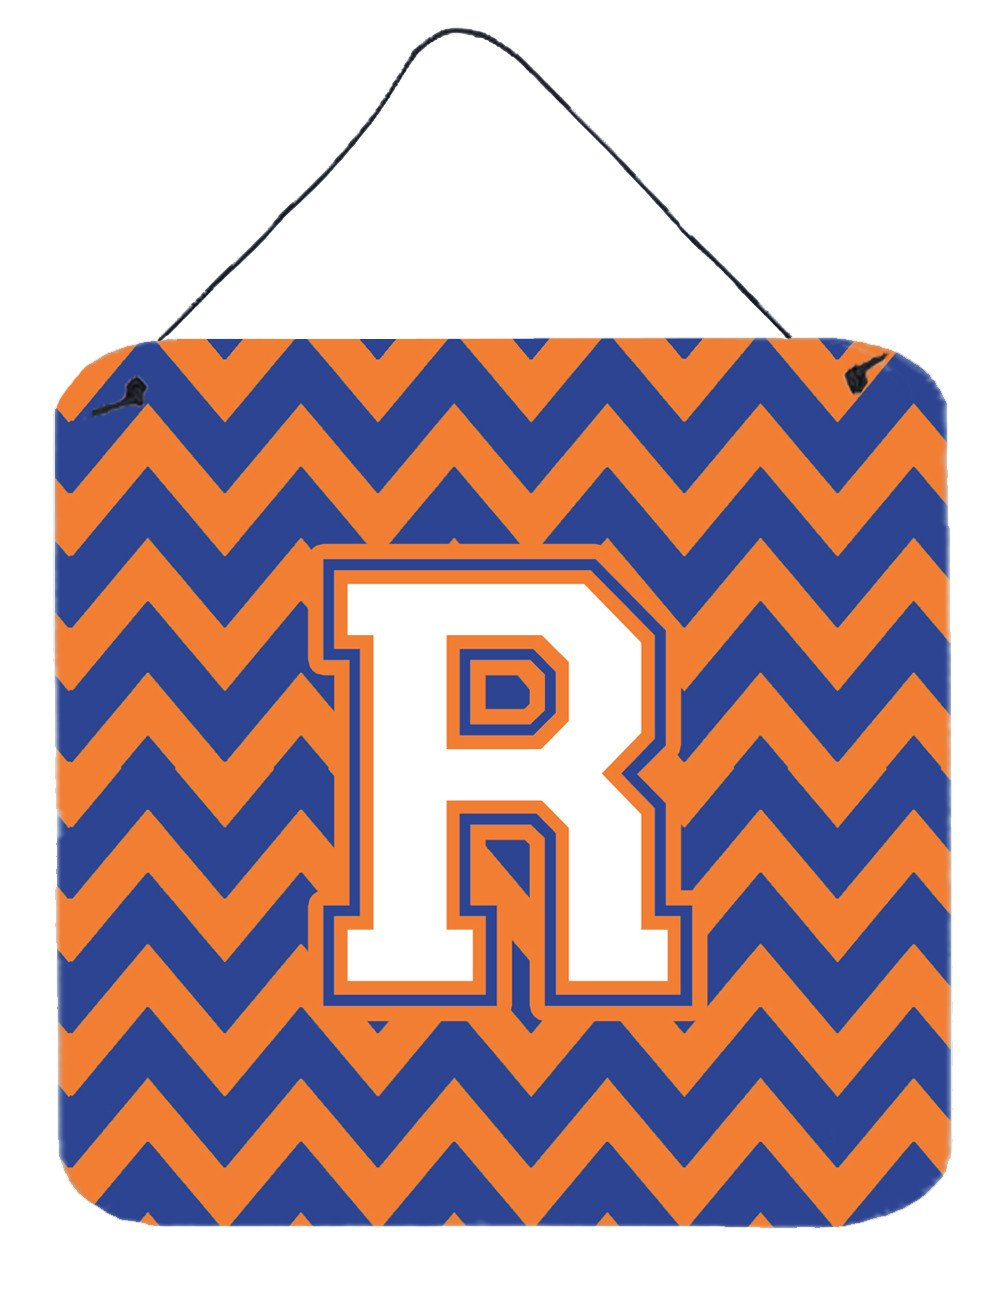 Letter R Chevron Blue and Orange #3 Wall or Door Hanging Prints CJ1060-RDS66 by Caroline's Treasures